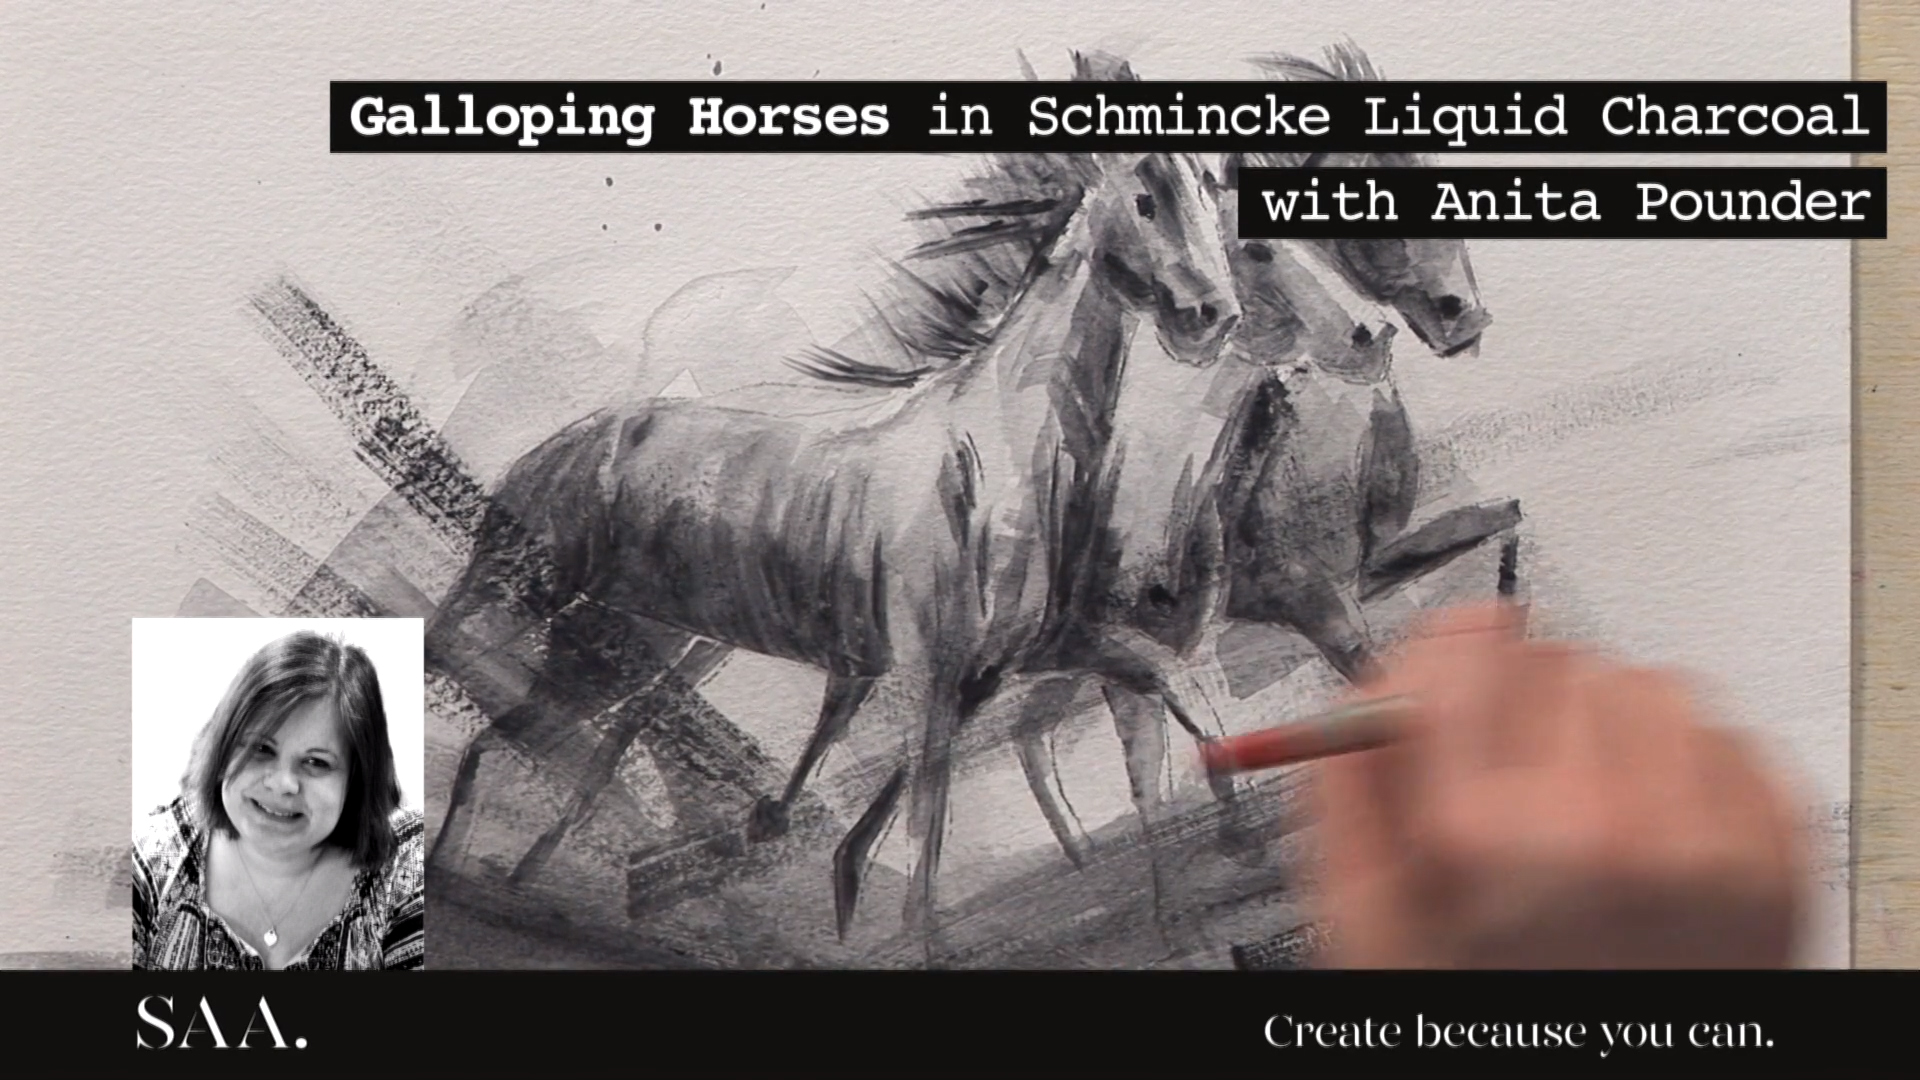 Tuition – Galloping Horses In Schmincke Liquid Charcoal With Anita Pounder